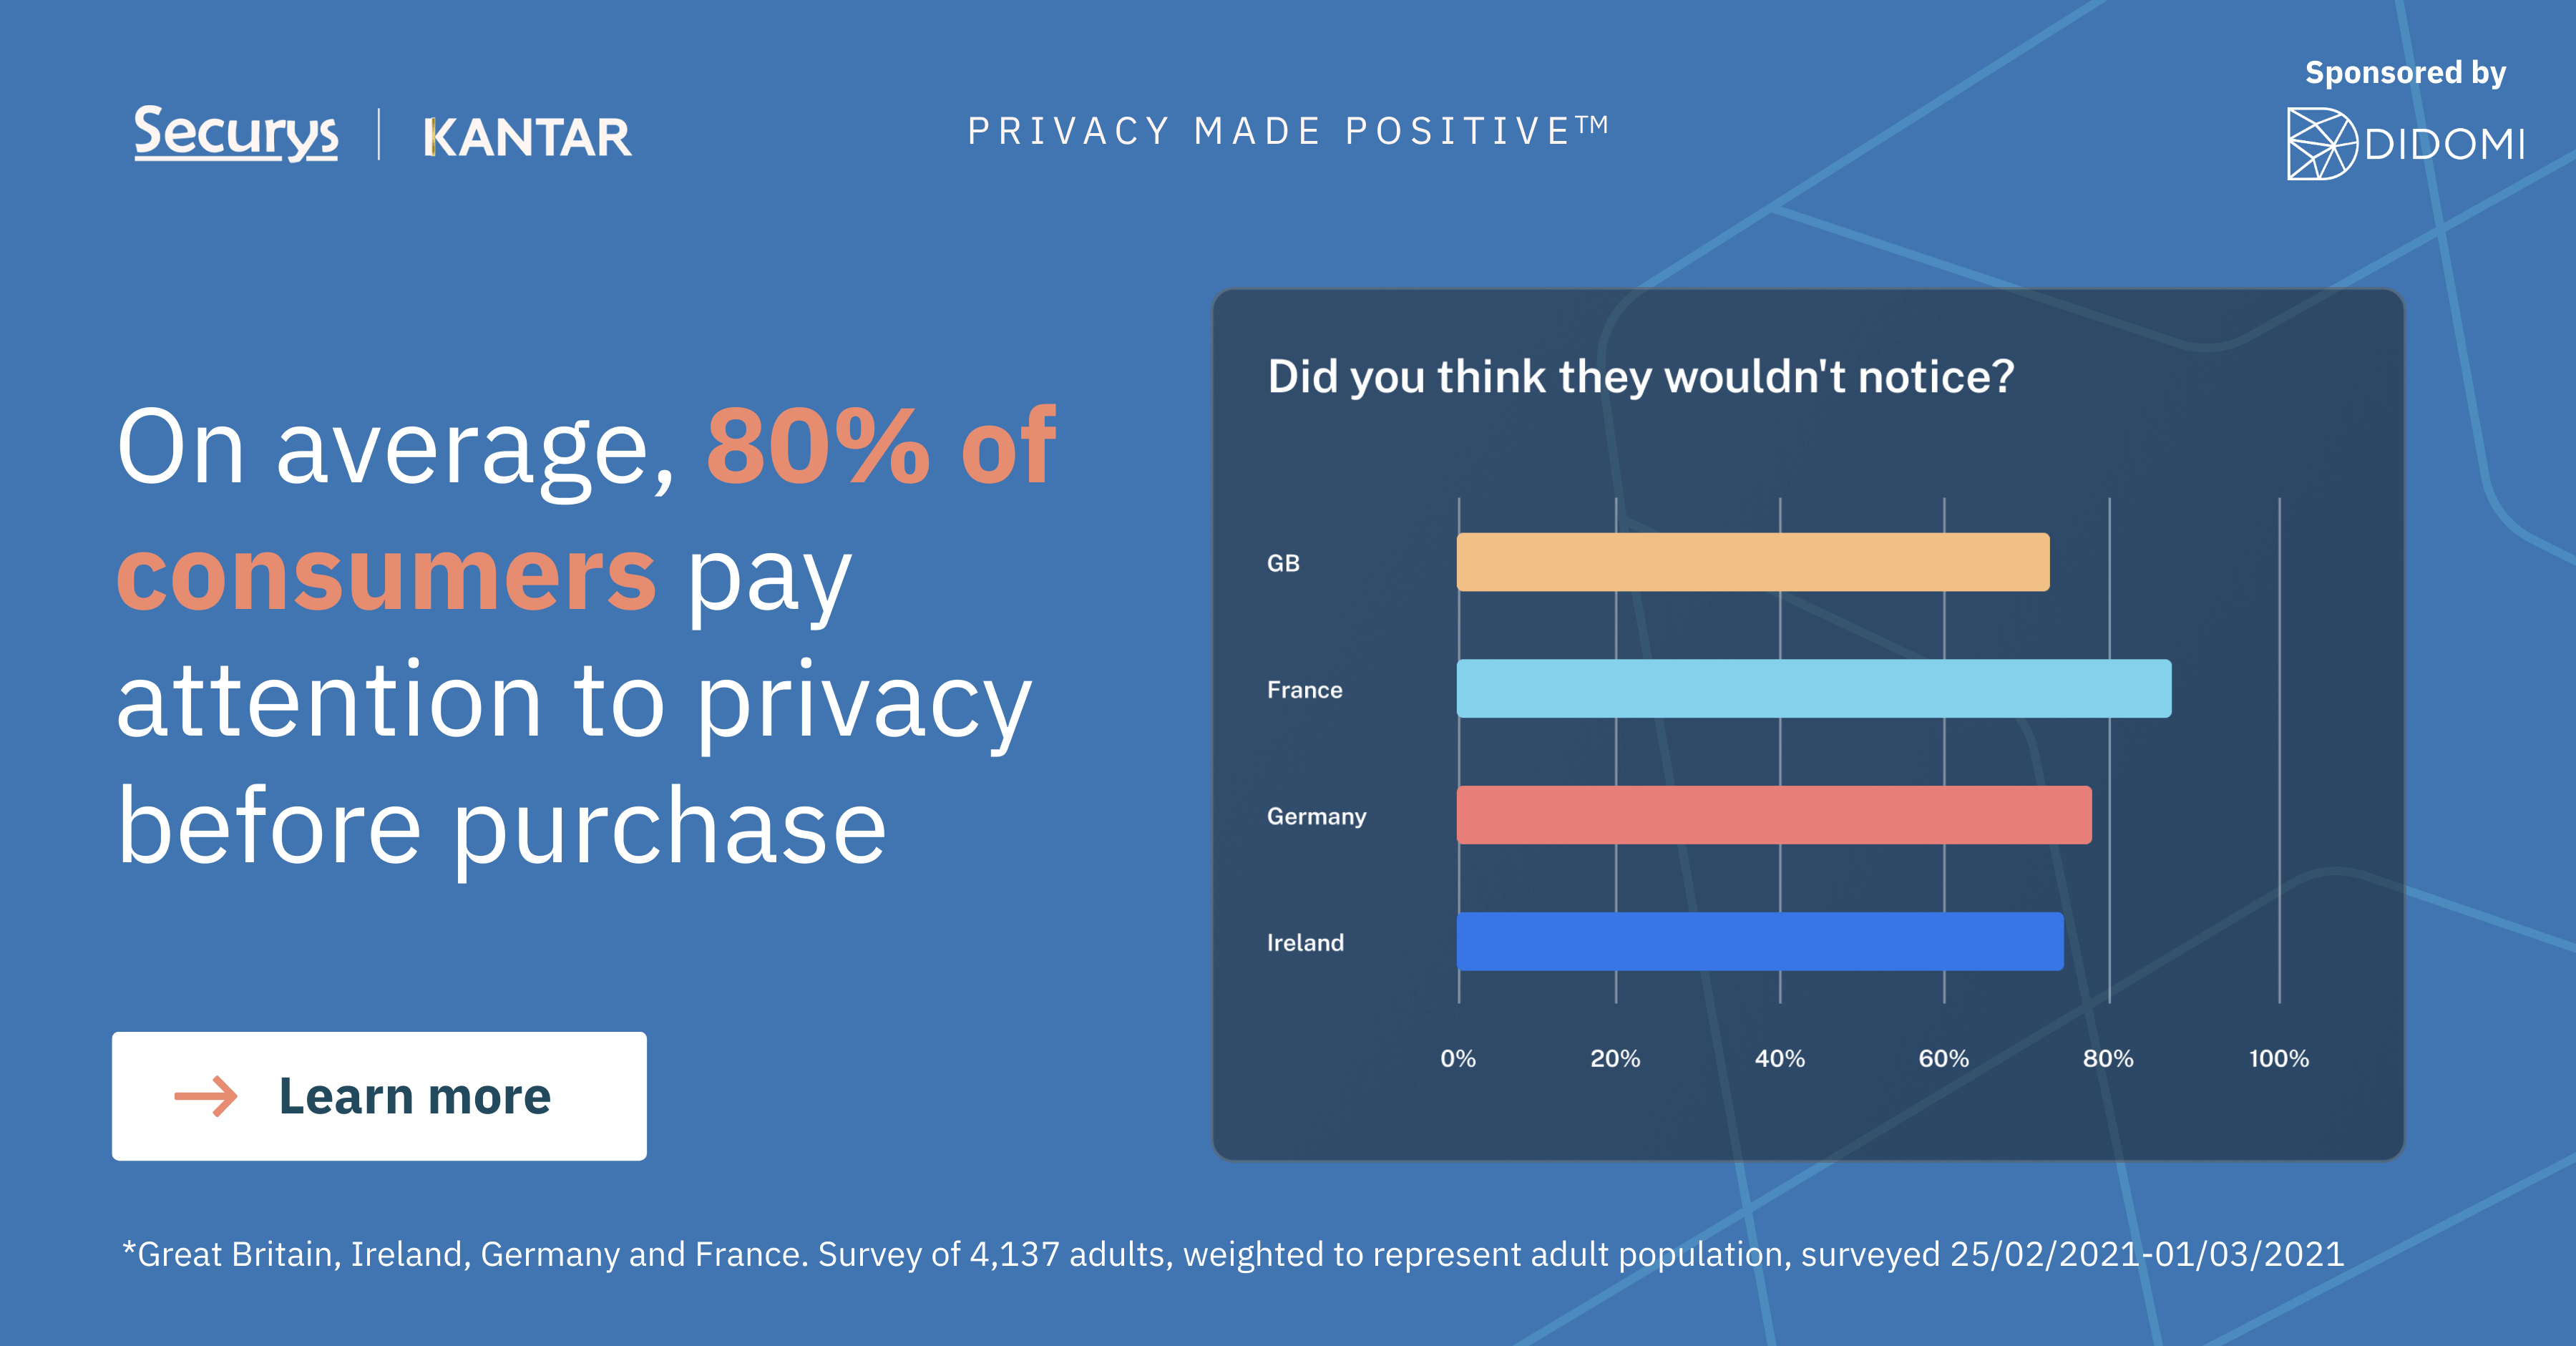 PRIVACY MADE POSITIVE - results